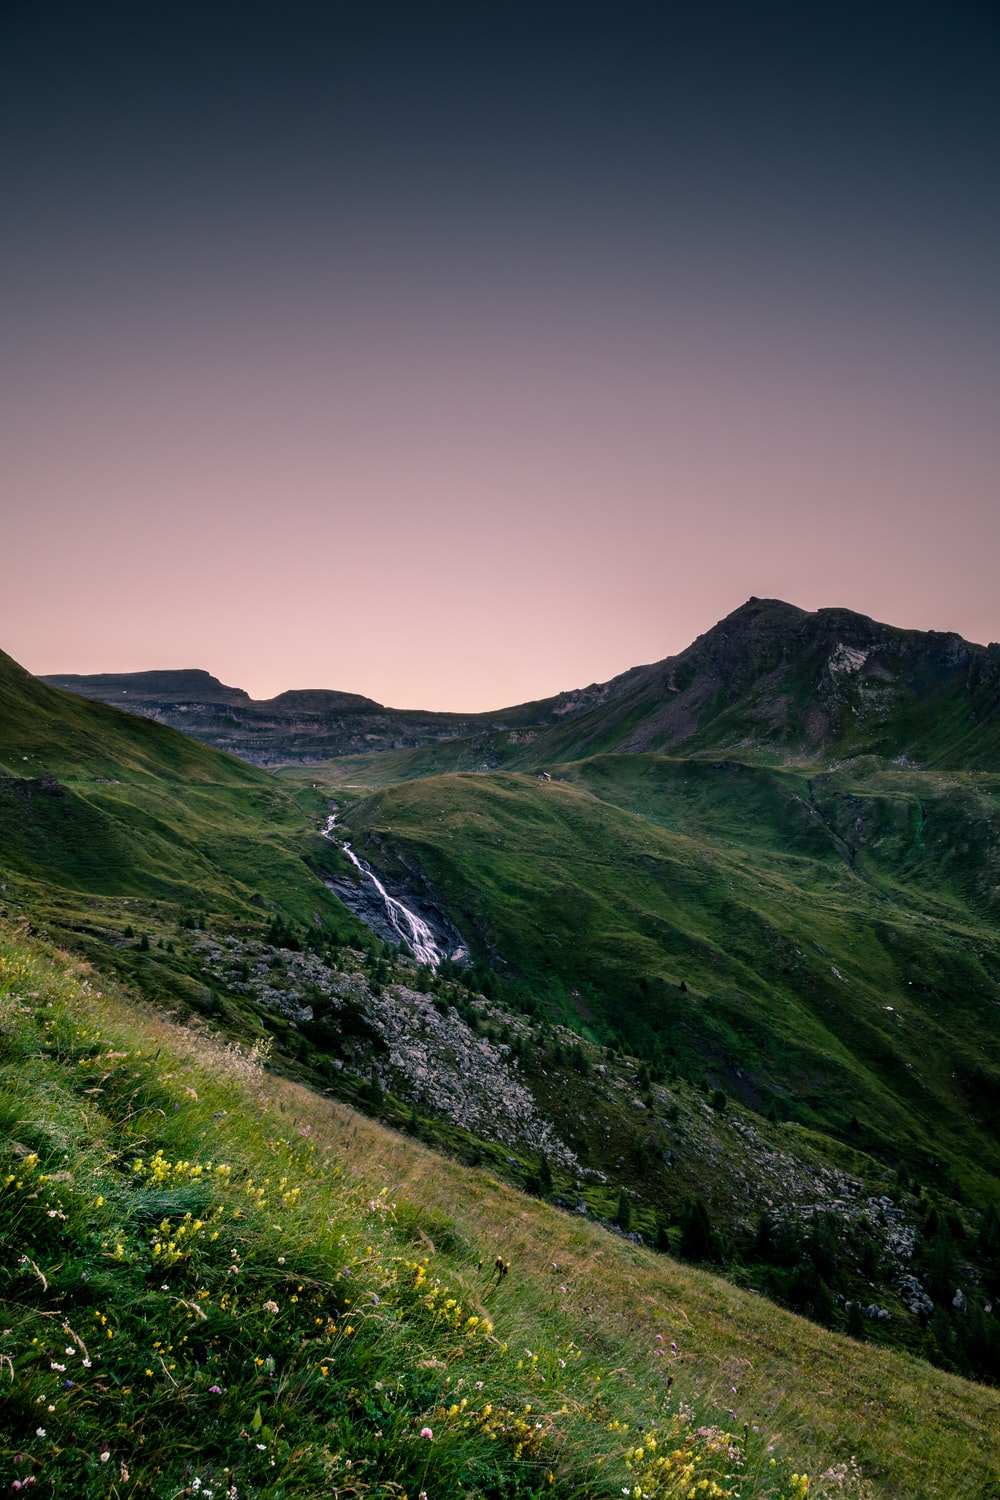 landscape photography of mountain range with river cascading